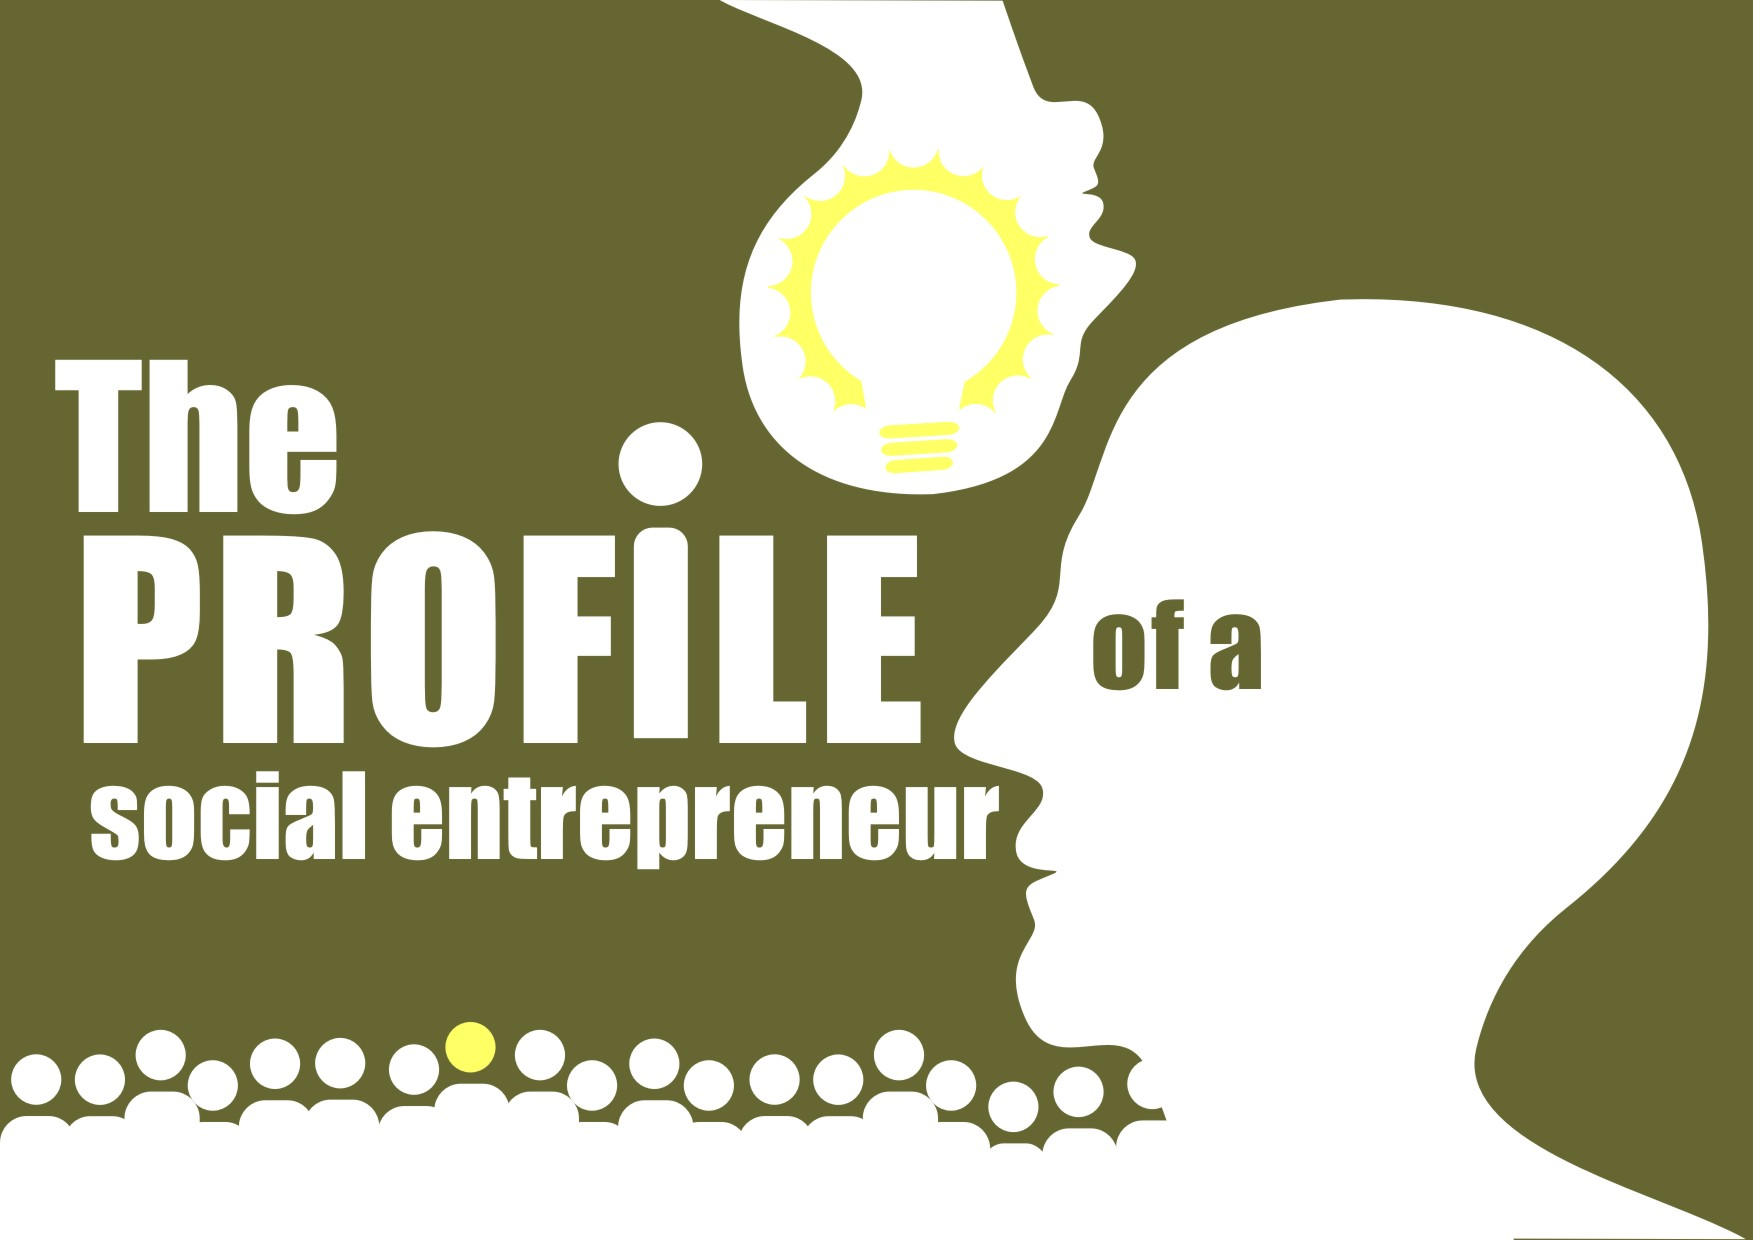 The profile of a social entrepreneur